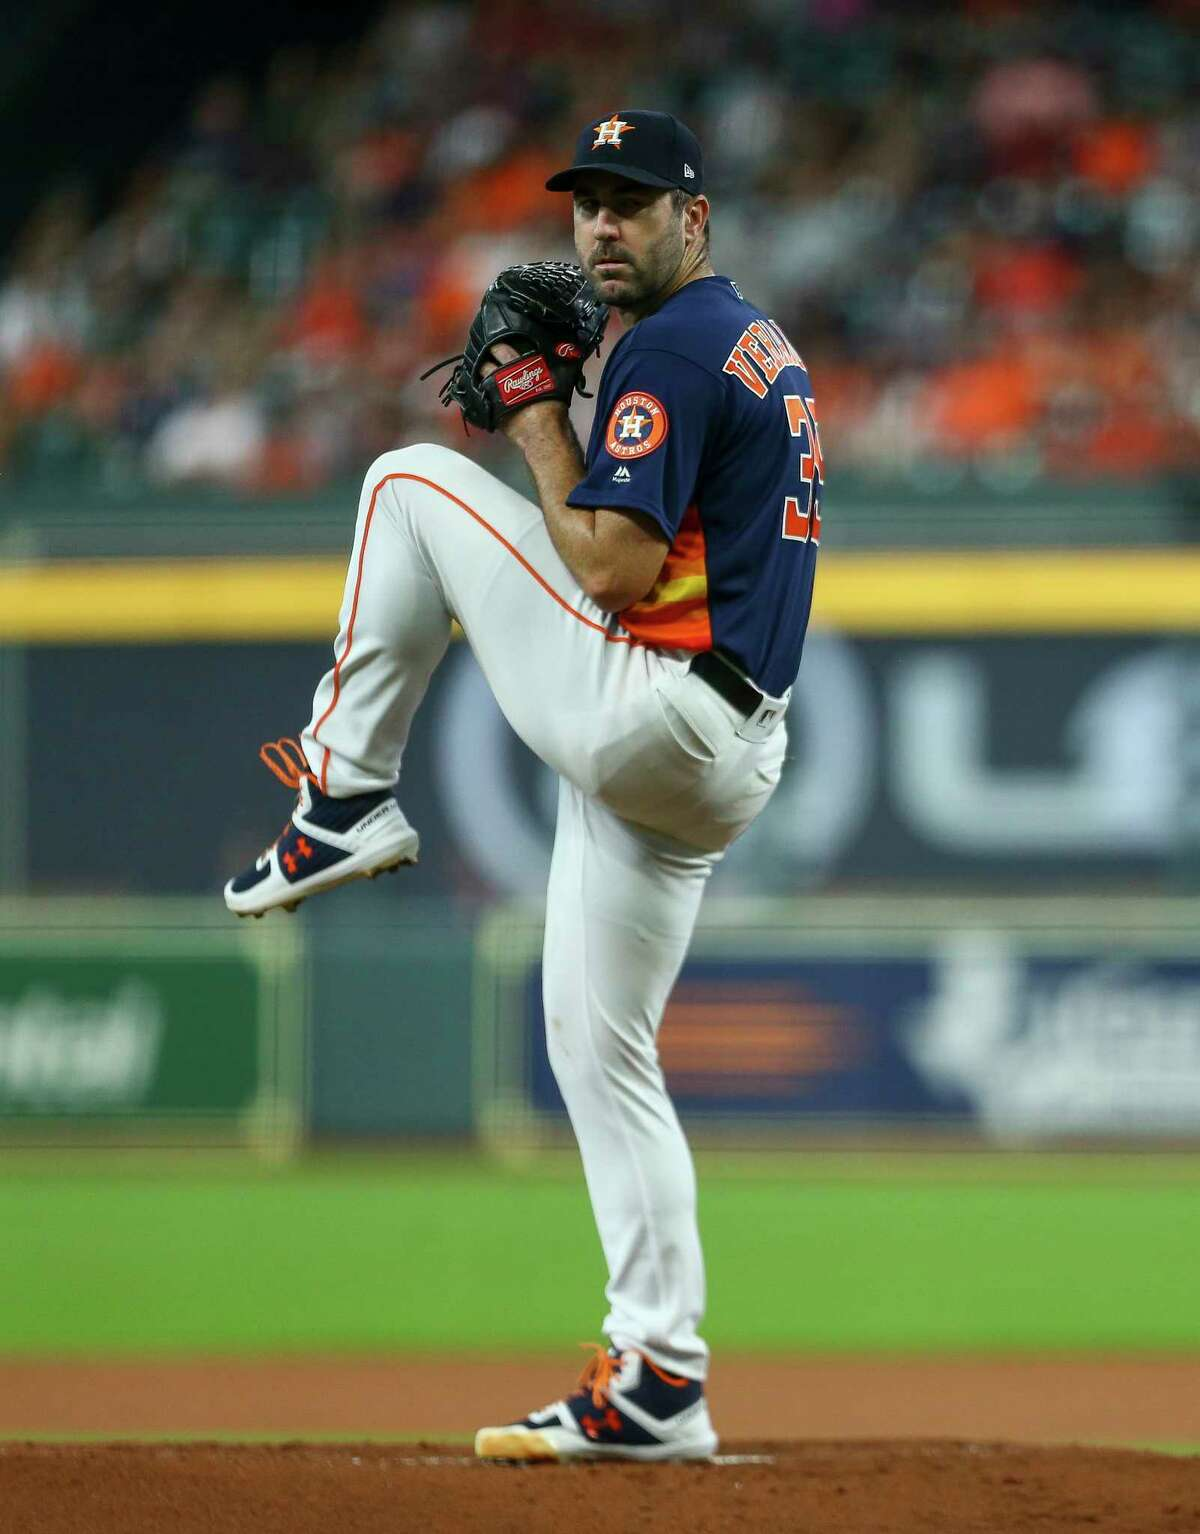 Houston Astros starting pitcher Justin Verlander (35) throws the ball against the Seattle Mariners during the first inning of an MLB game at Minute Maid Park Sunday, Aug. 4, 2019, in Houston.